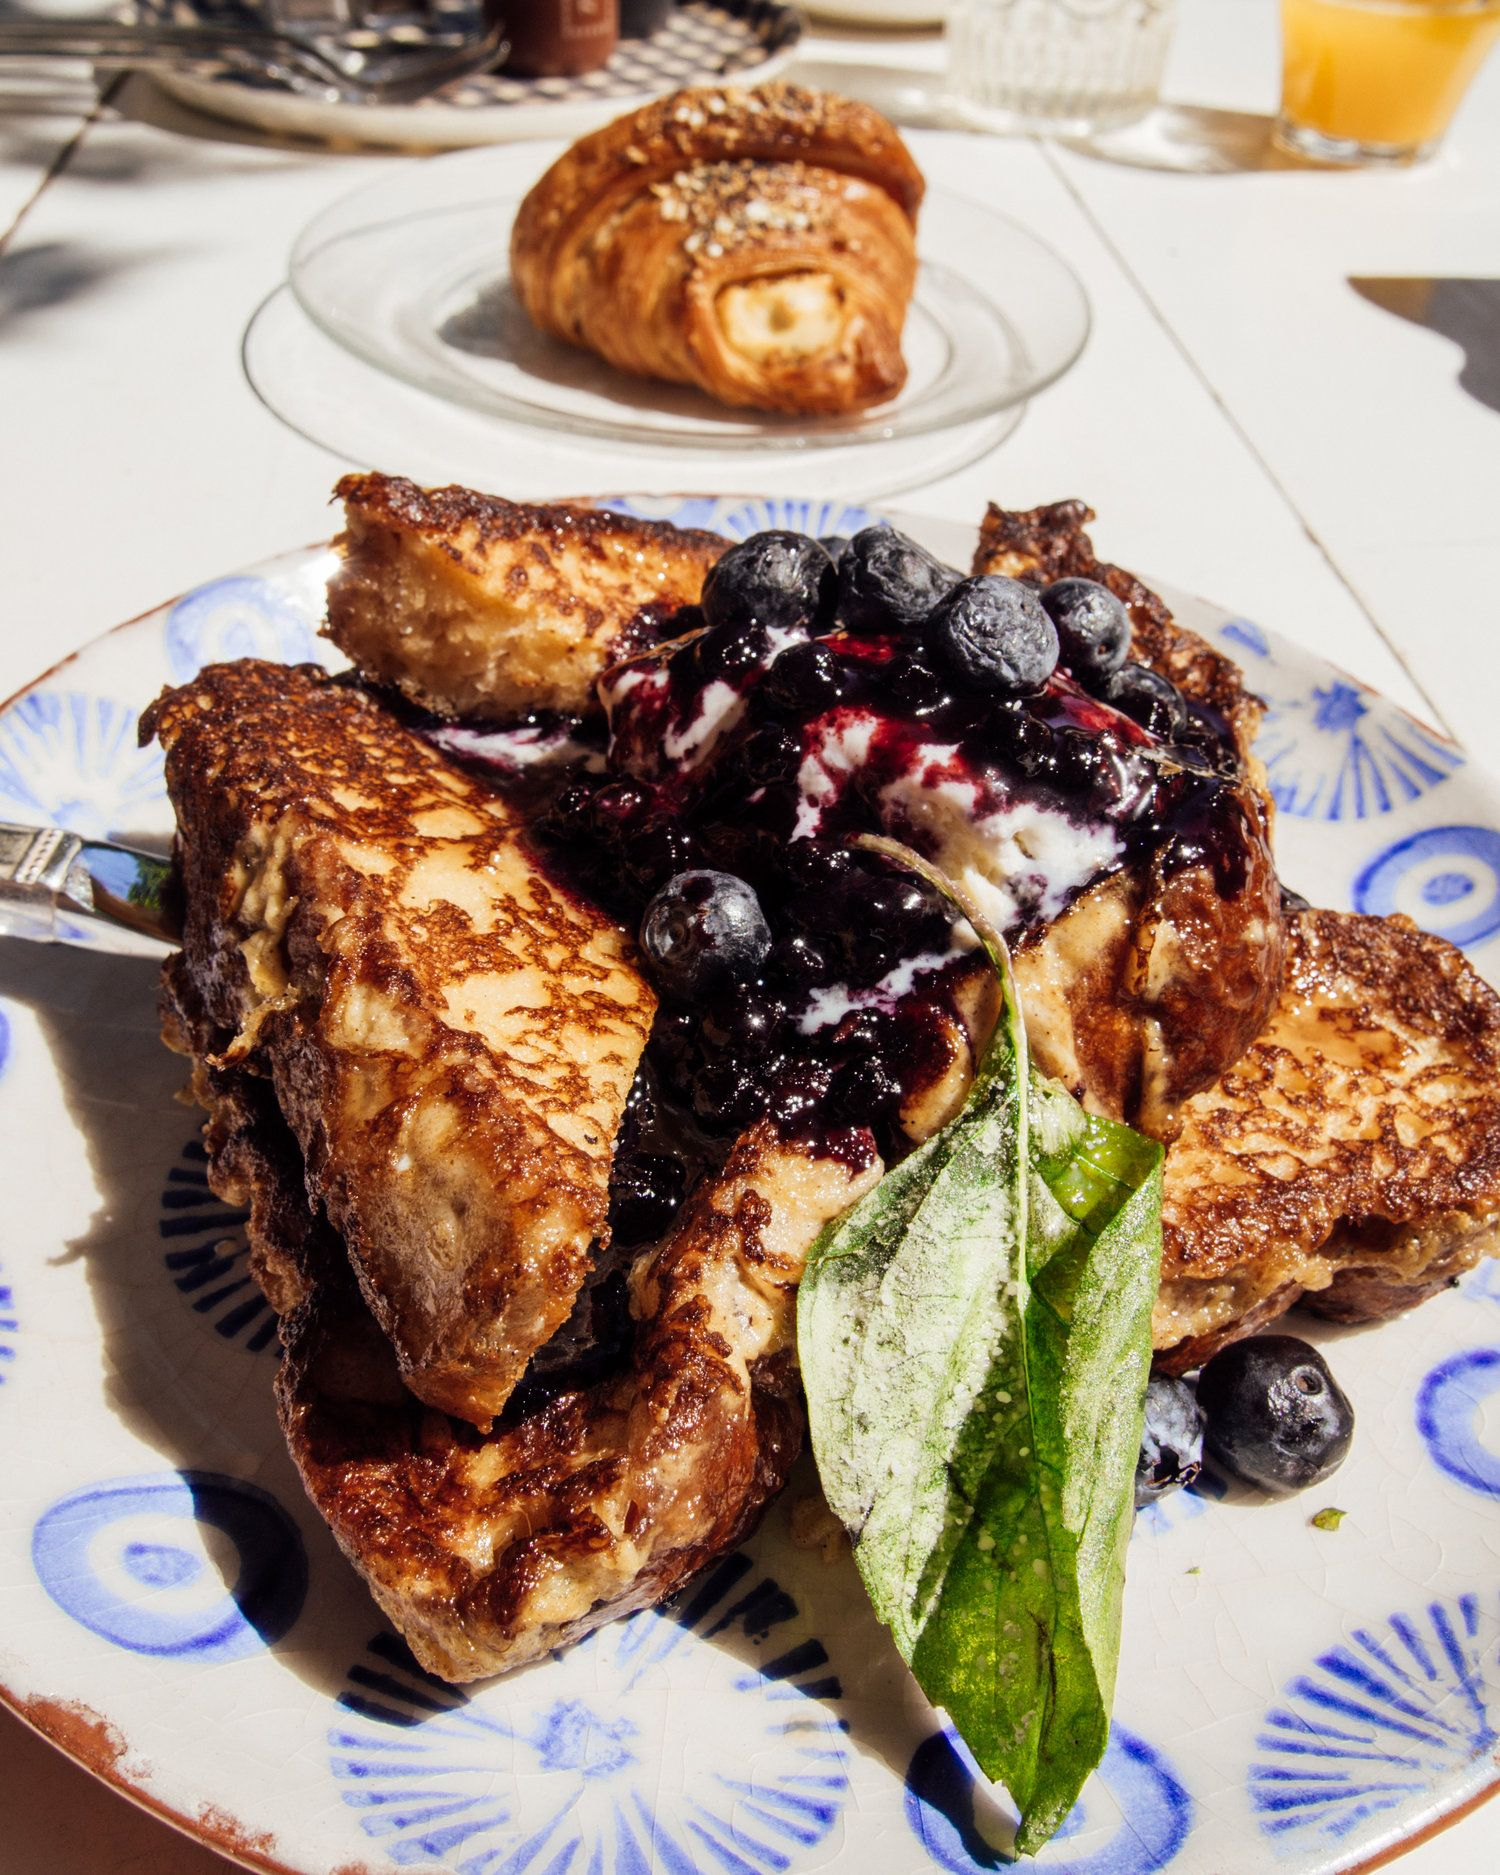 House Baked Brioche French Toast Elizabeth Street Cafe Austin Texas Elizabeth Street Cafe Brunch Restaurants Toast Toppings